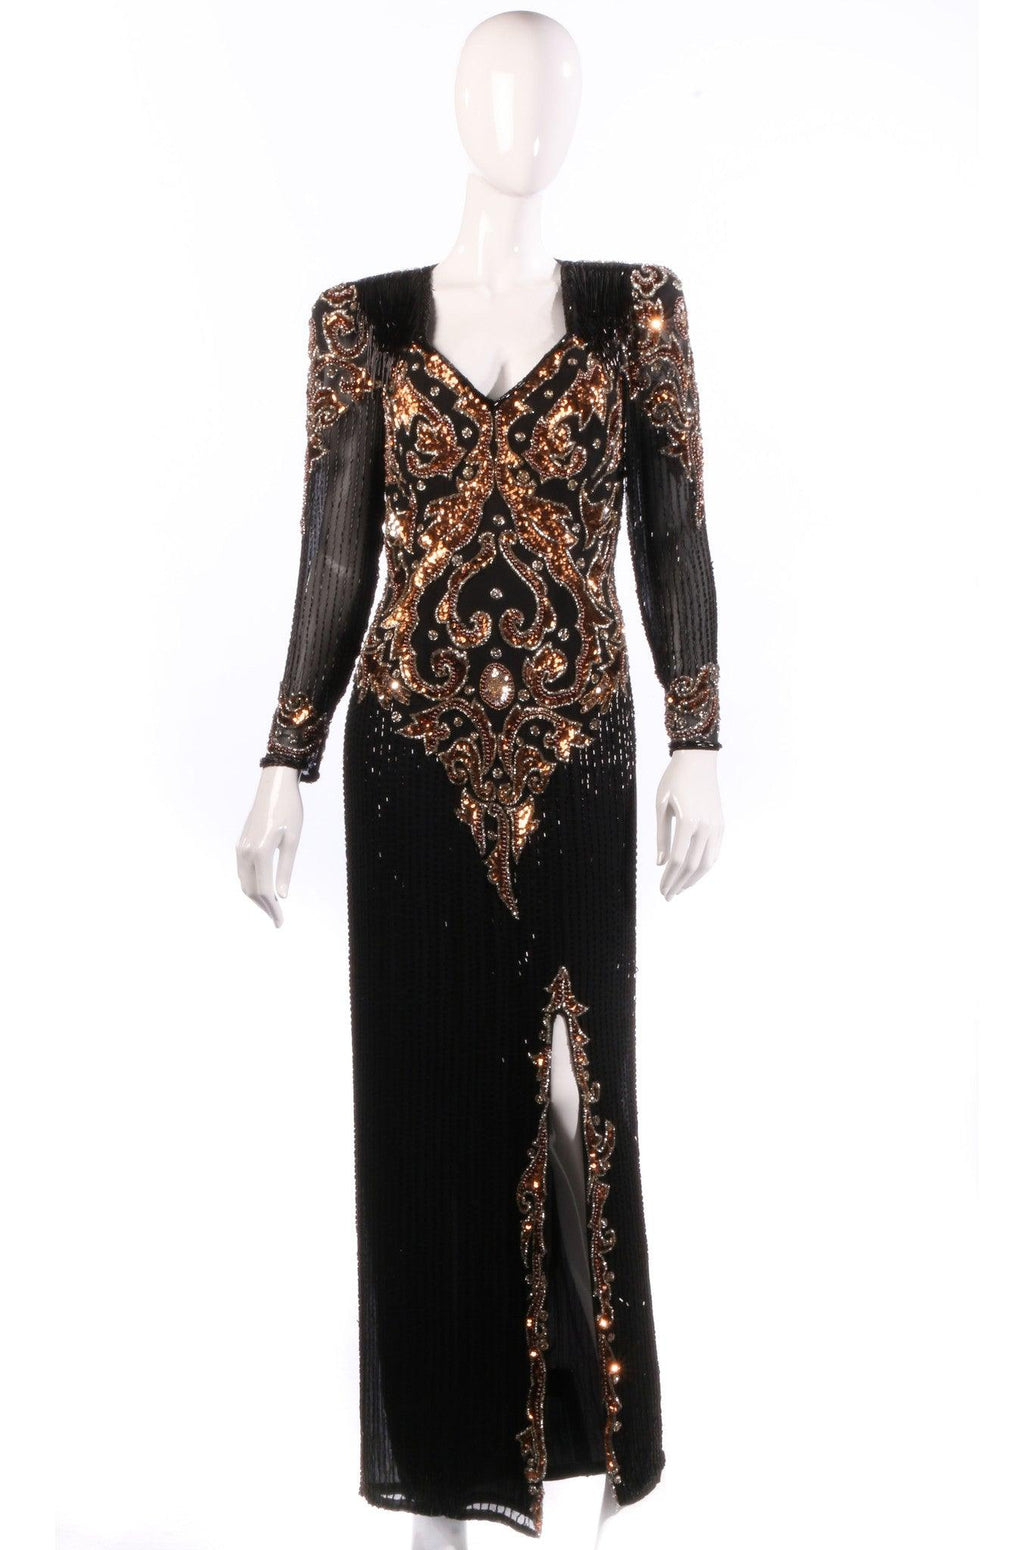 Black and bronze sequinned ball gown size 10/12